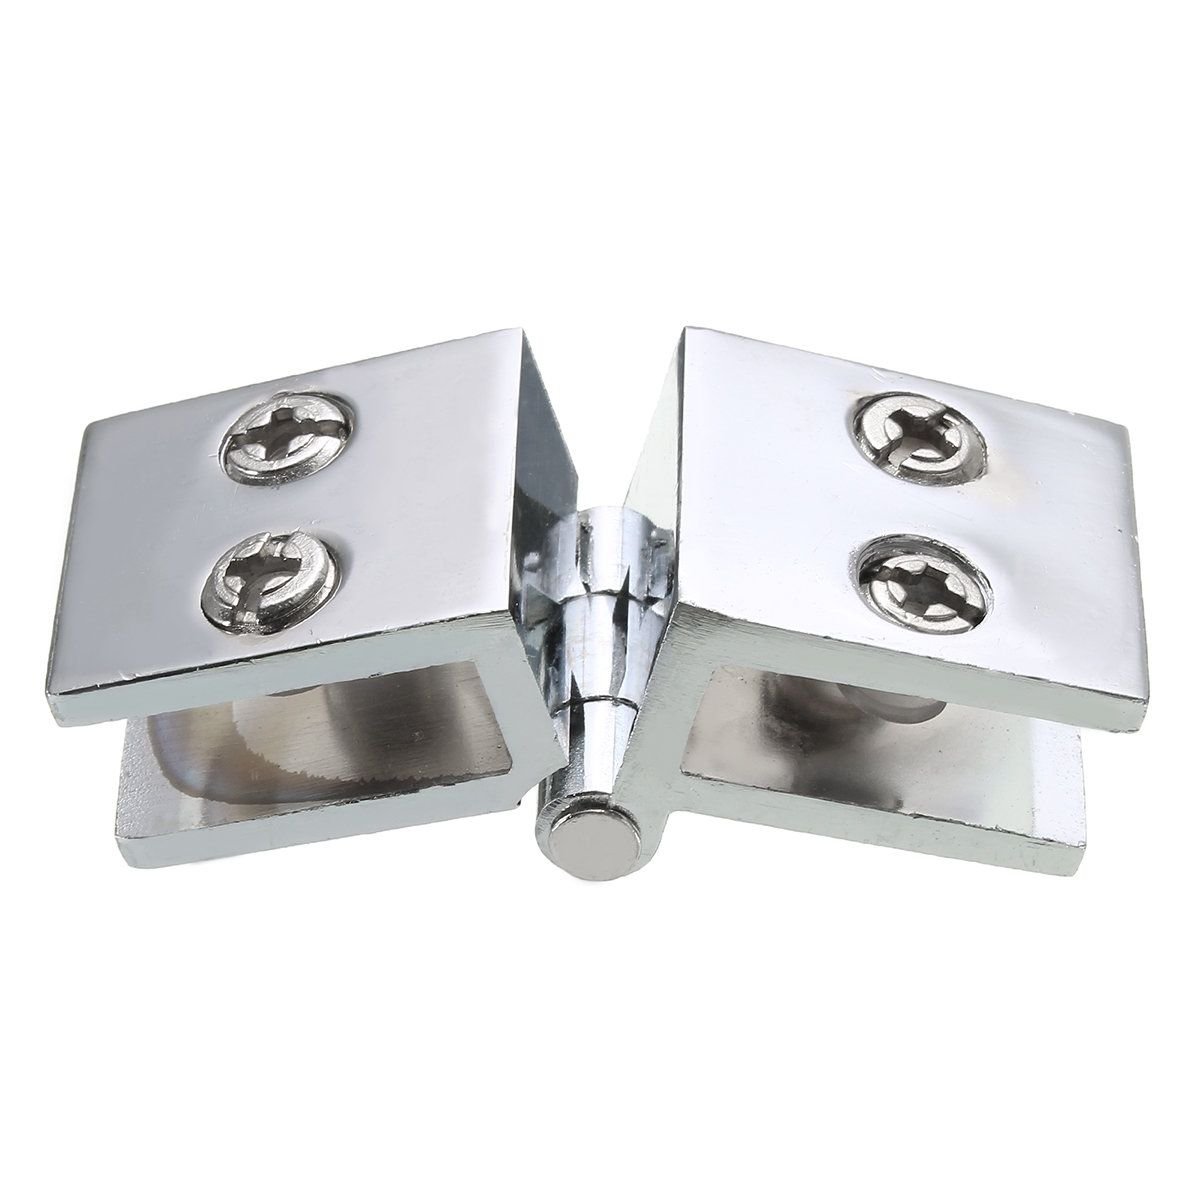 180 Degree Clamp Hinge Double Action for 5-8mm Glass Door ...